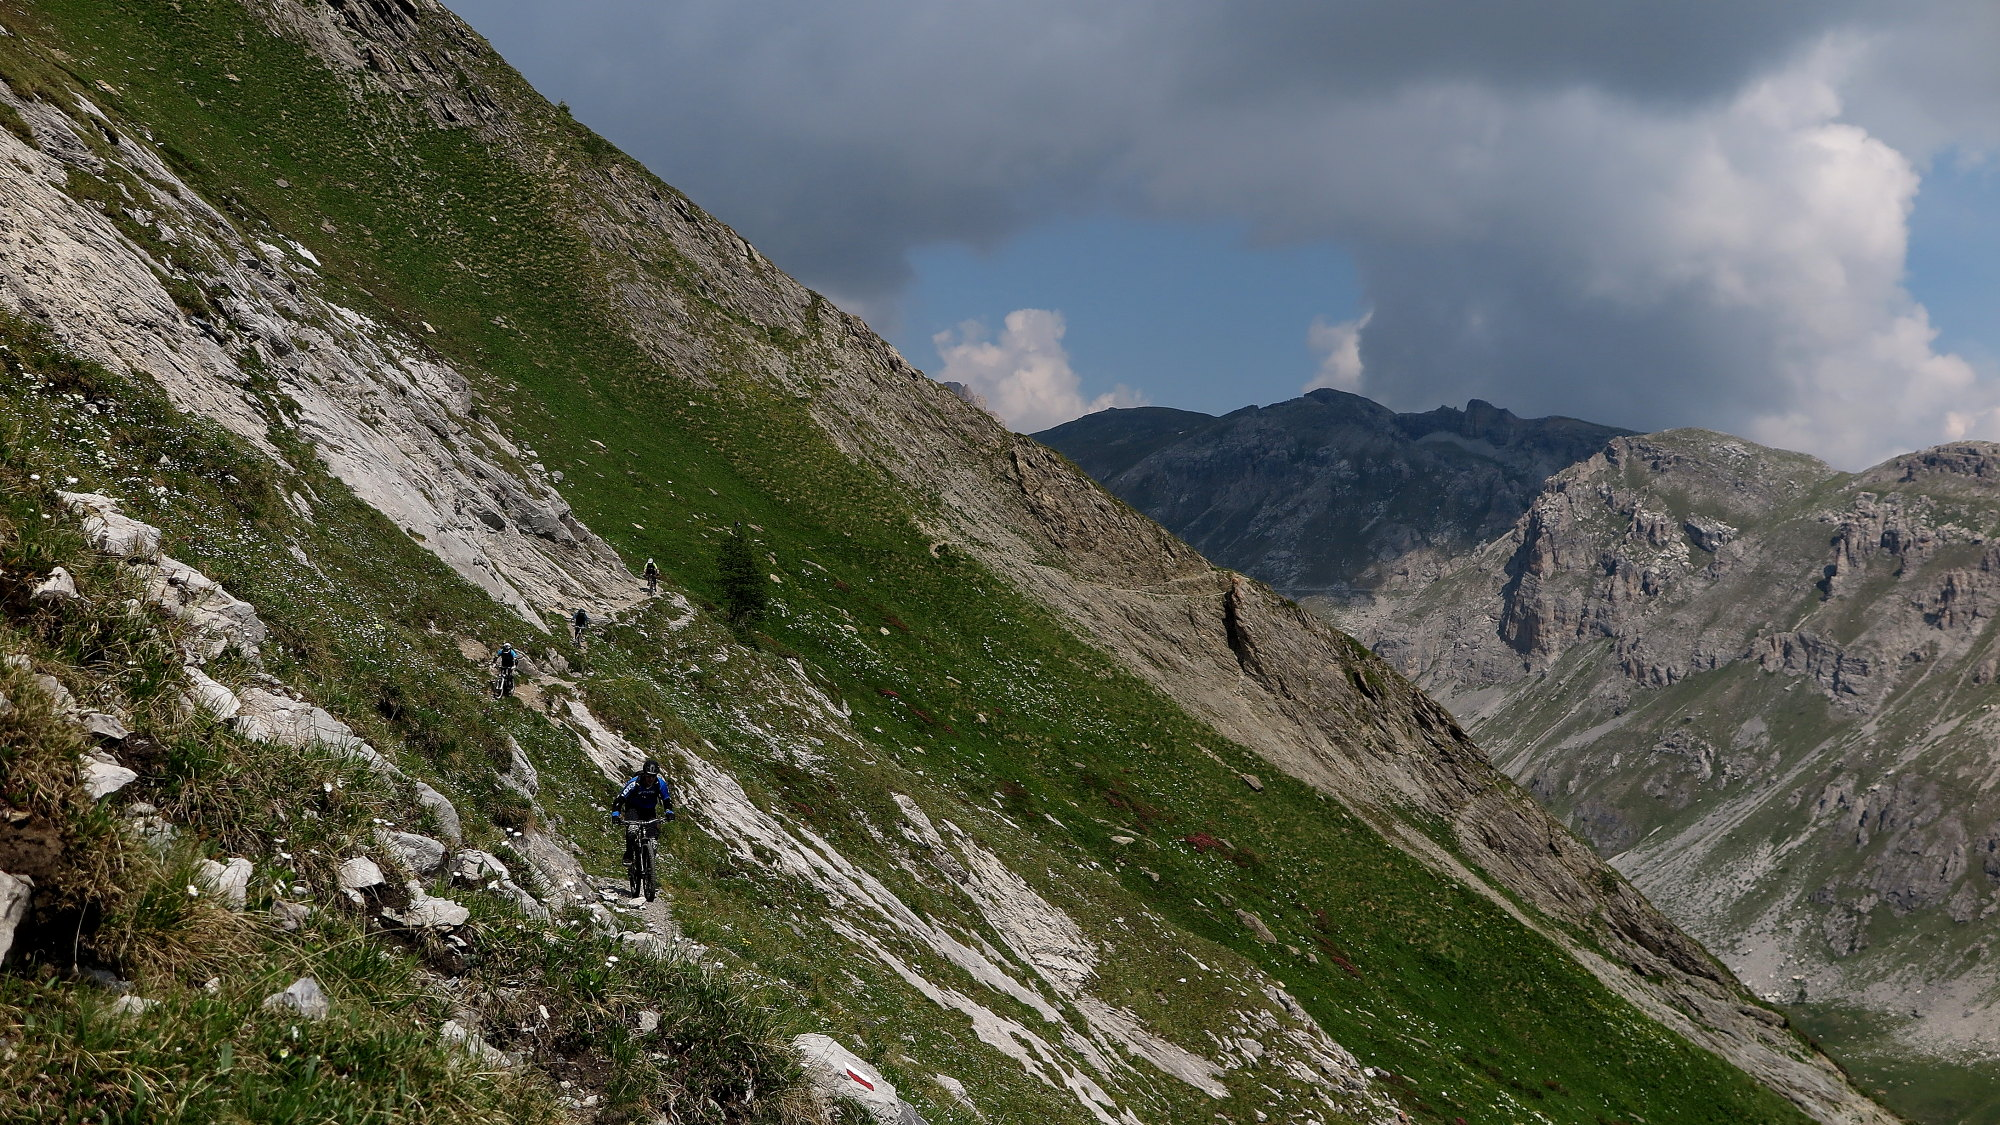 Ride Alpine Trails Mountainbike Freeride & Enduro Camp MTB Individuelle Tourenplanung Ride on